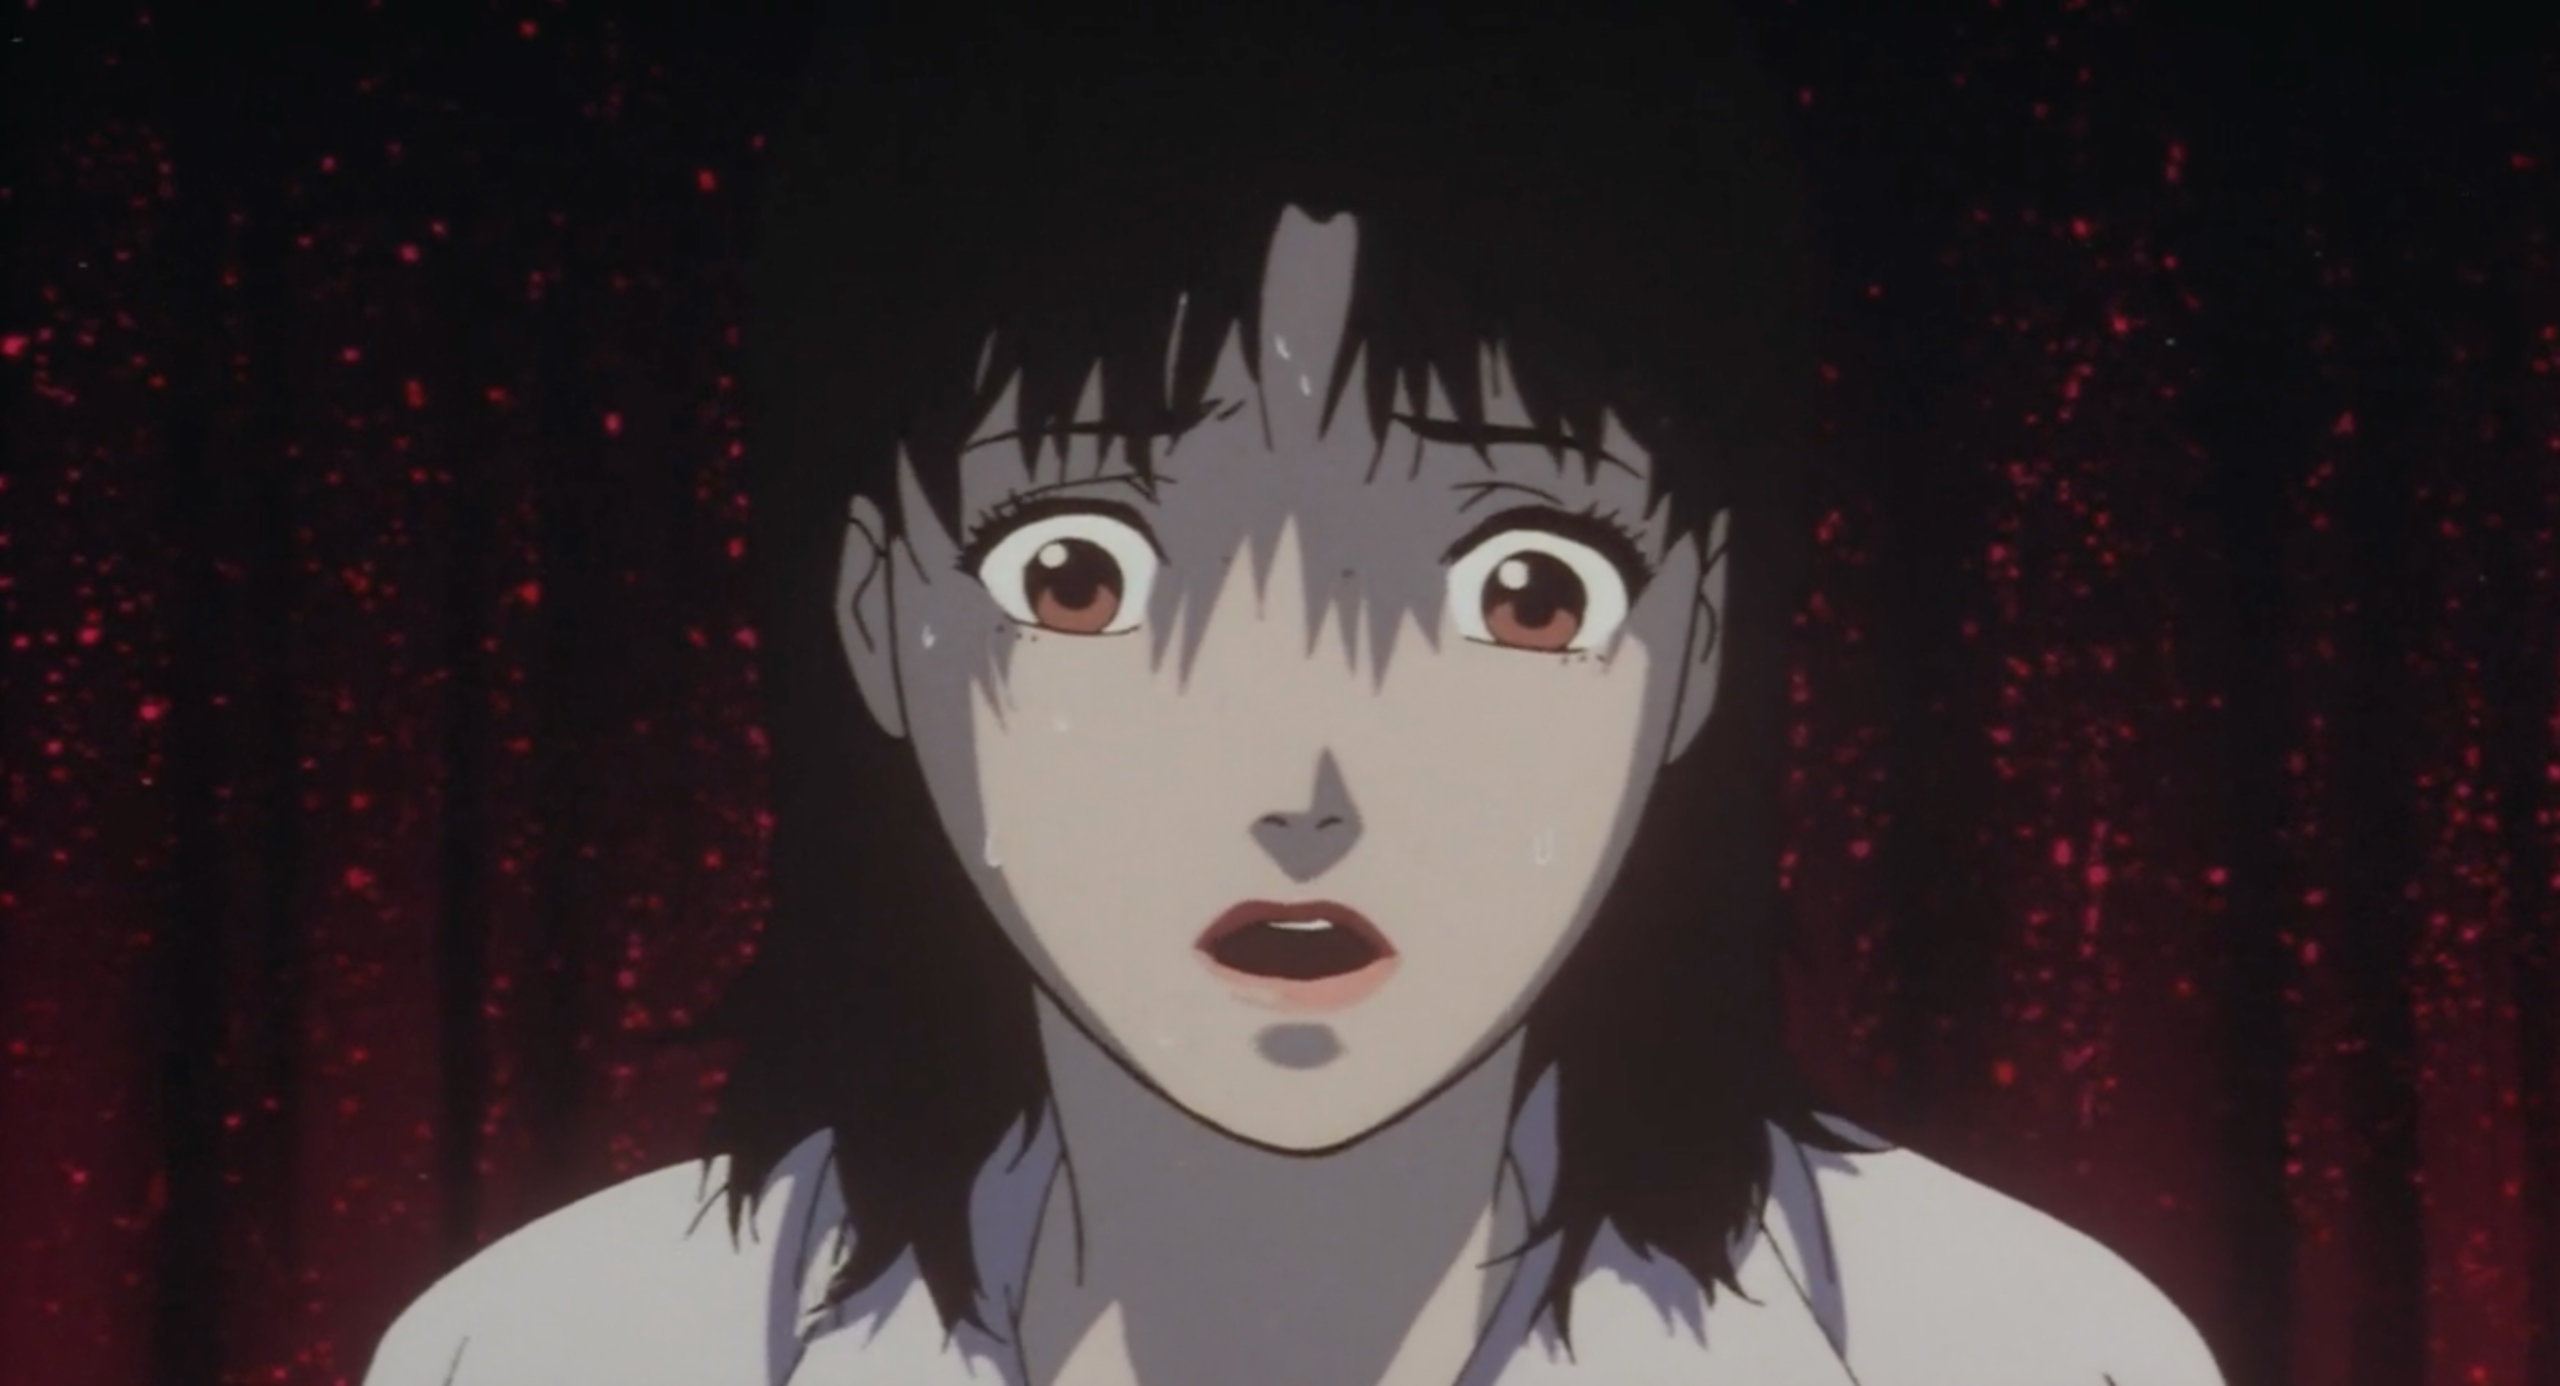 Mima stares at Me-Mania in horror in Perfect Blue